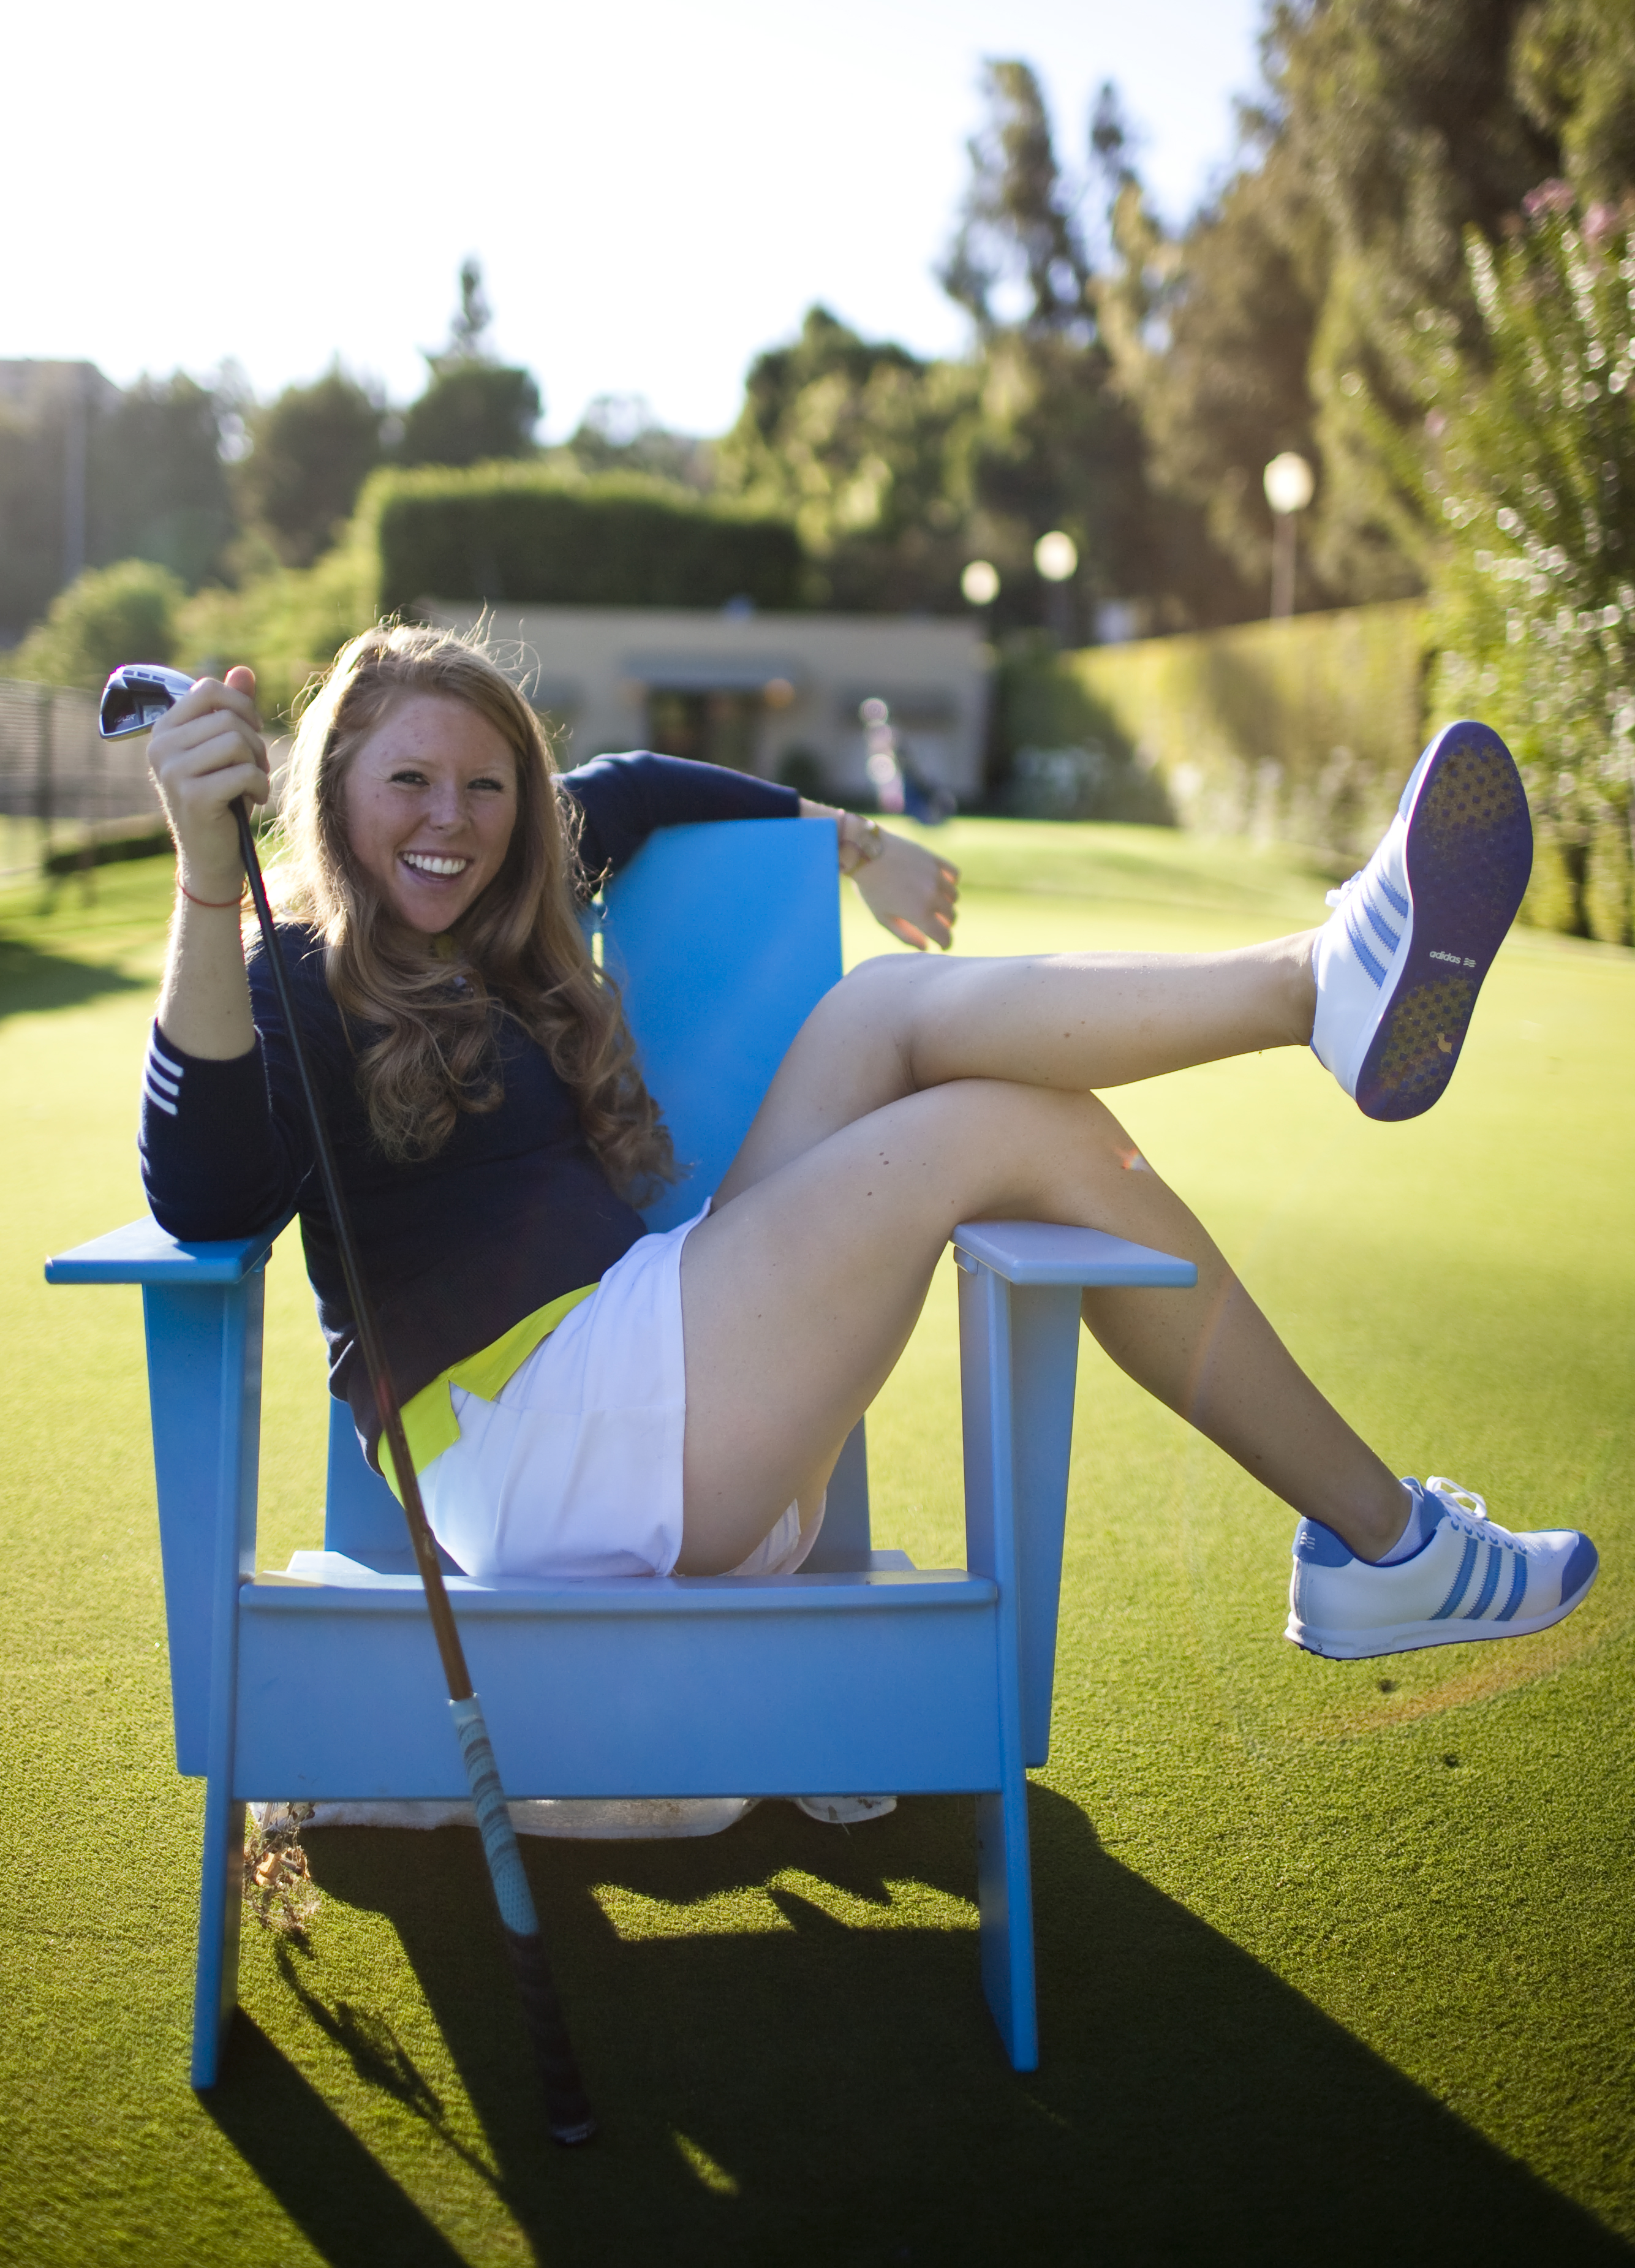 Freshman golfer Jacquie LeMarr gave up scholarship offers and decided to walk on UCLA women's golf to play for coach Carrie Forsyth.